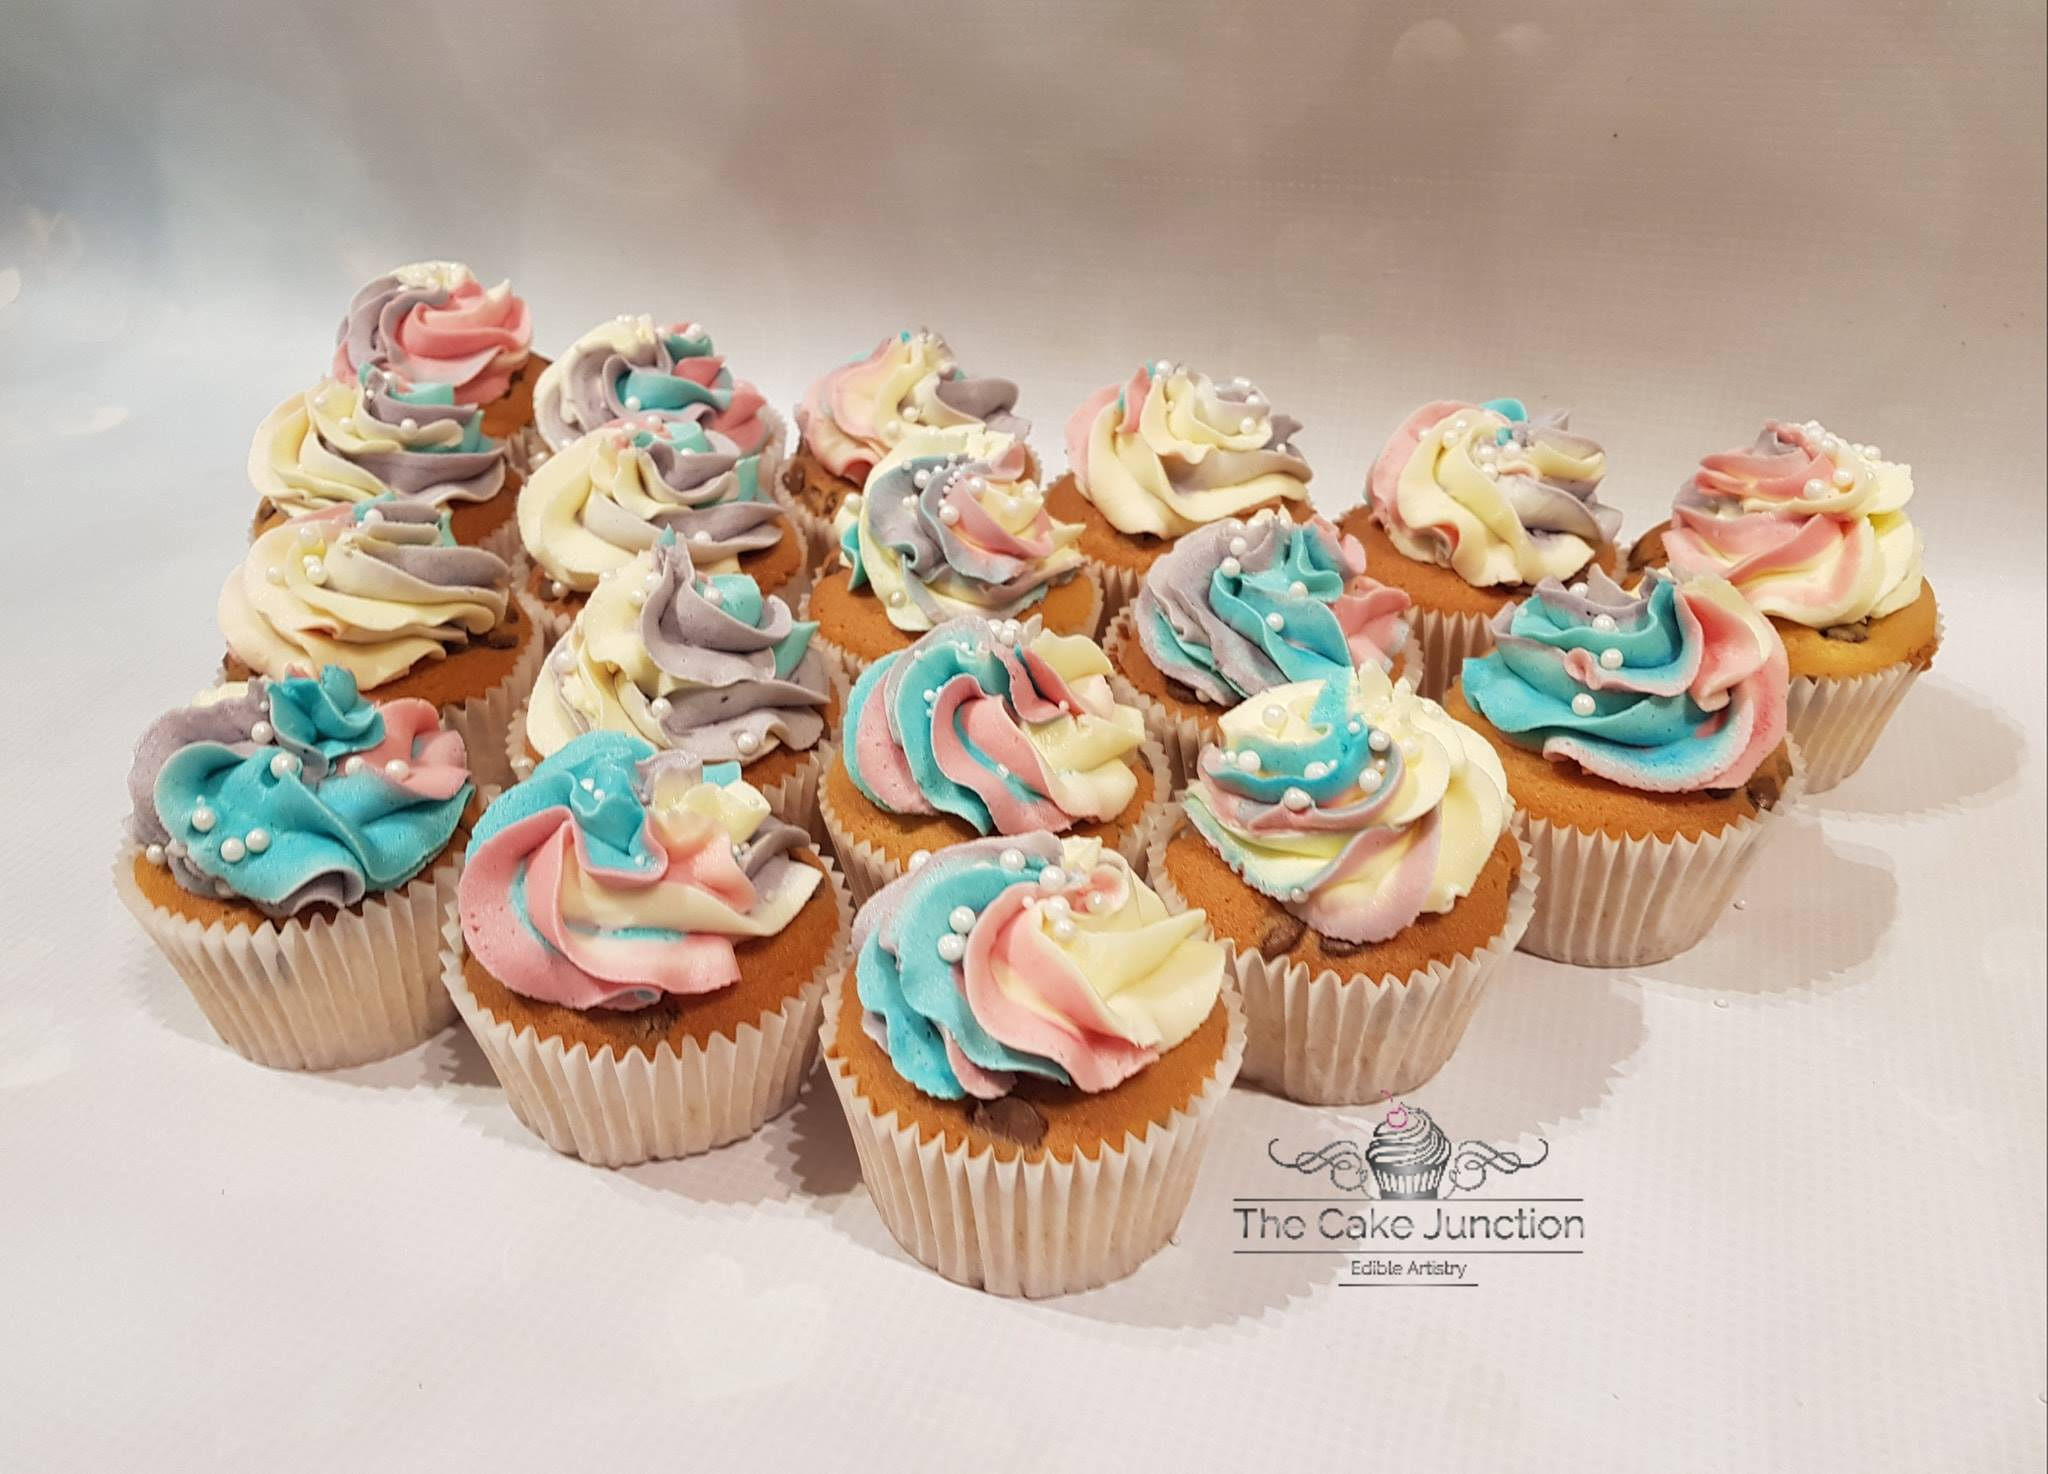 Cake Junction Cupcakes